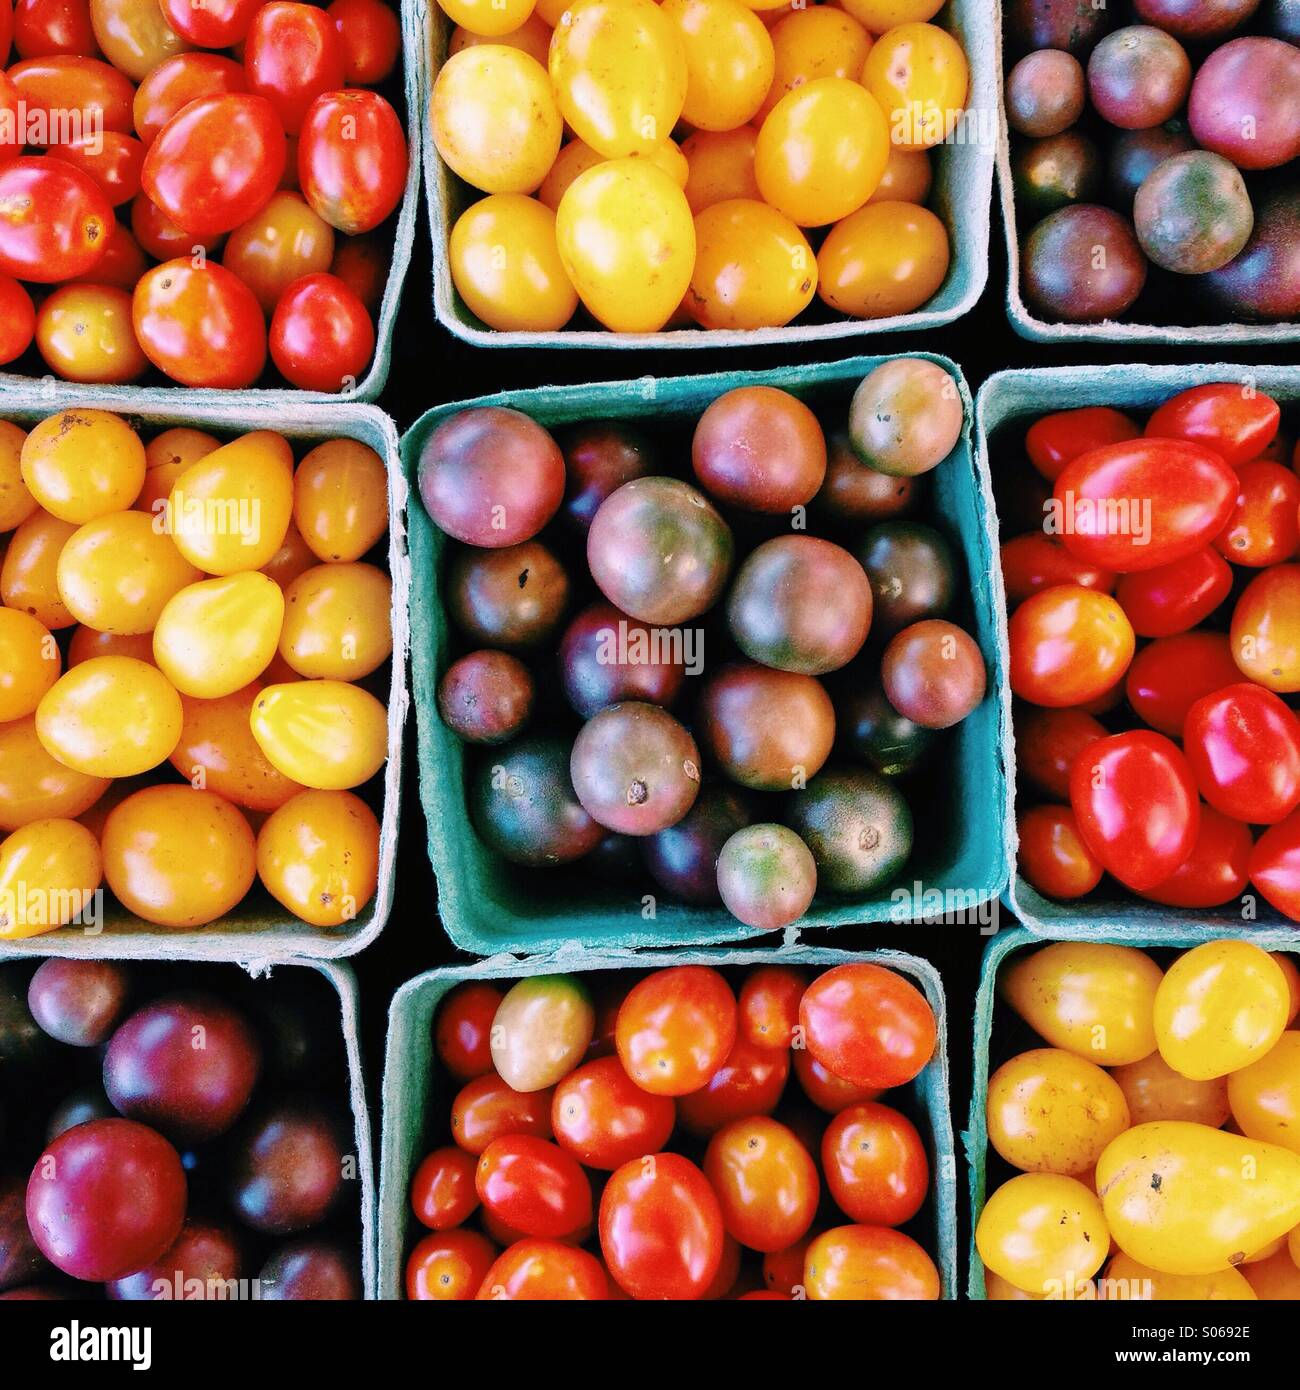 Assortment of colourful farm fresh tomatoes - Stock Image